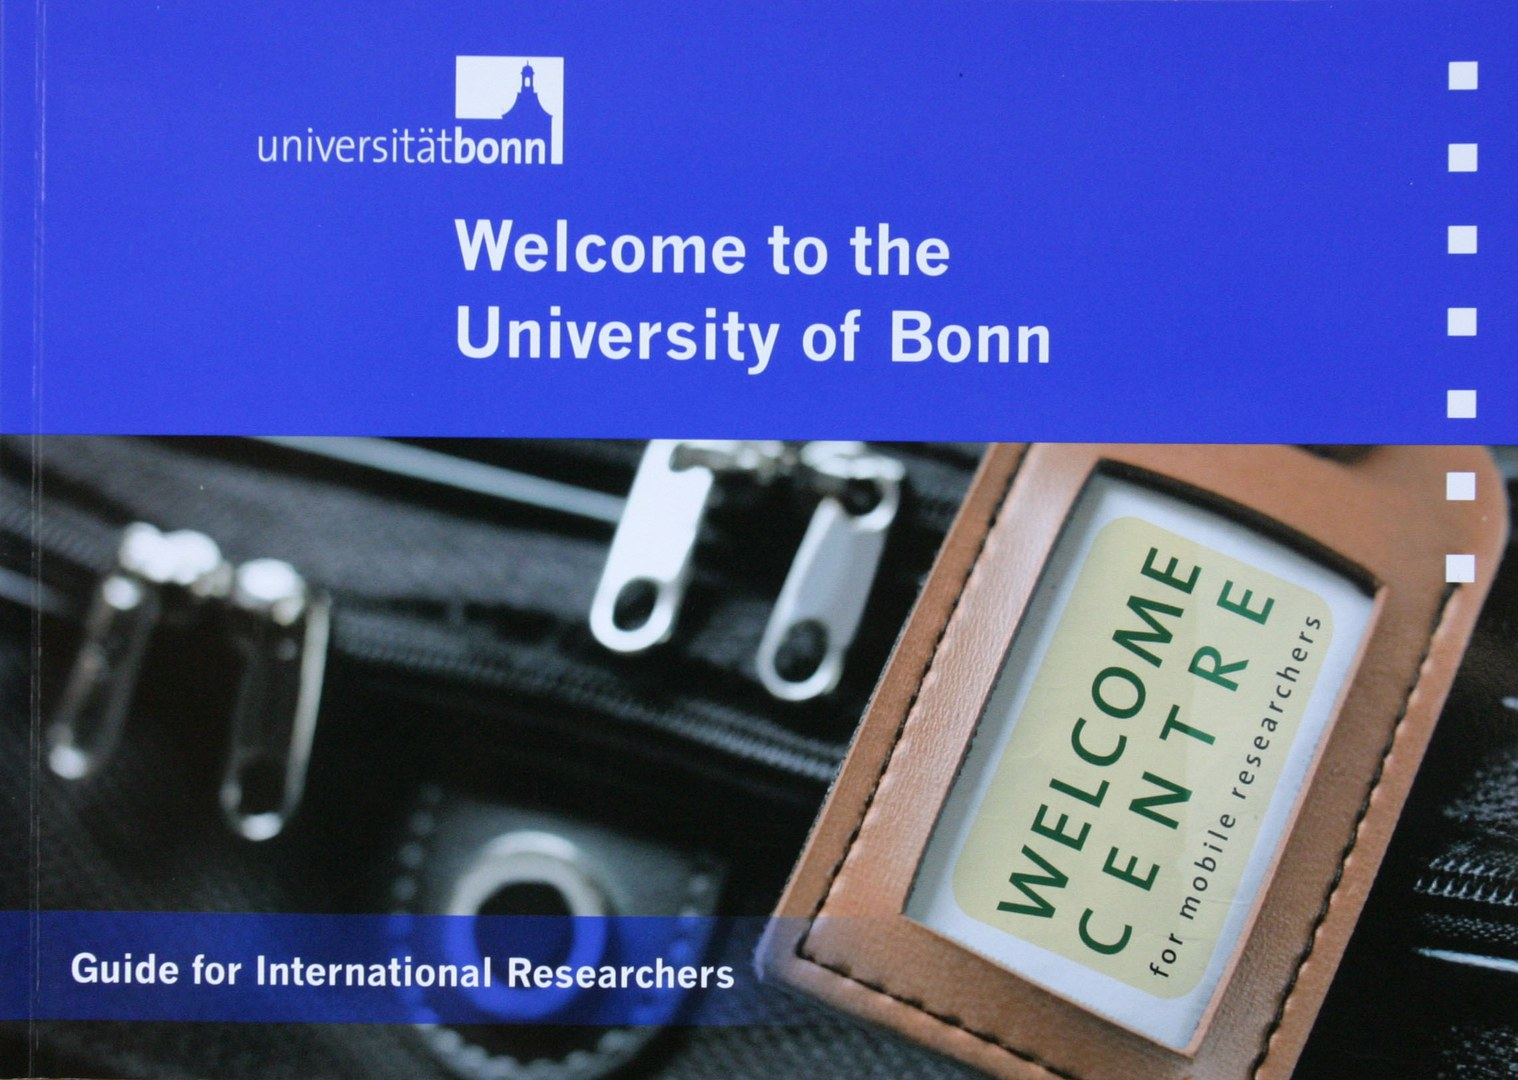 Welcome to the University of Bonn - Guide for International Researchers